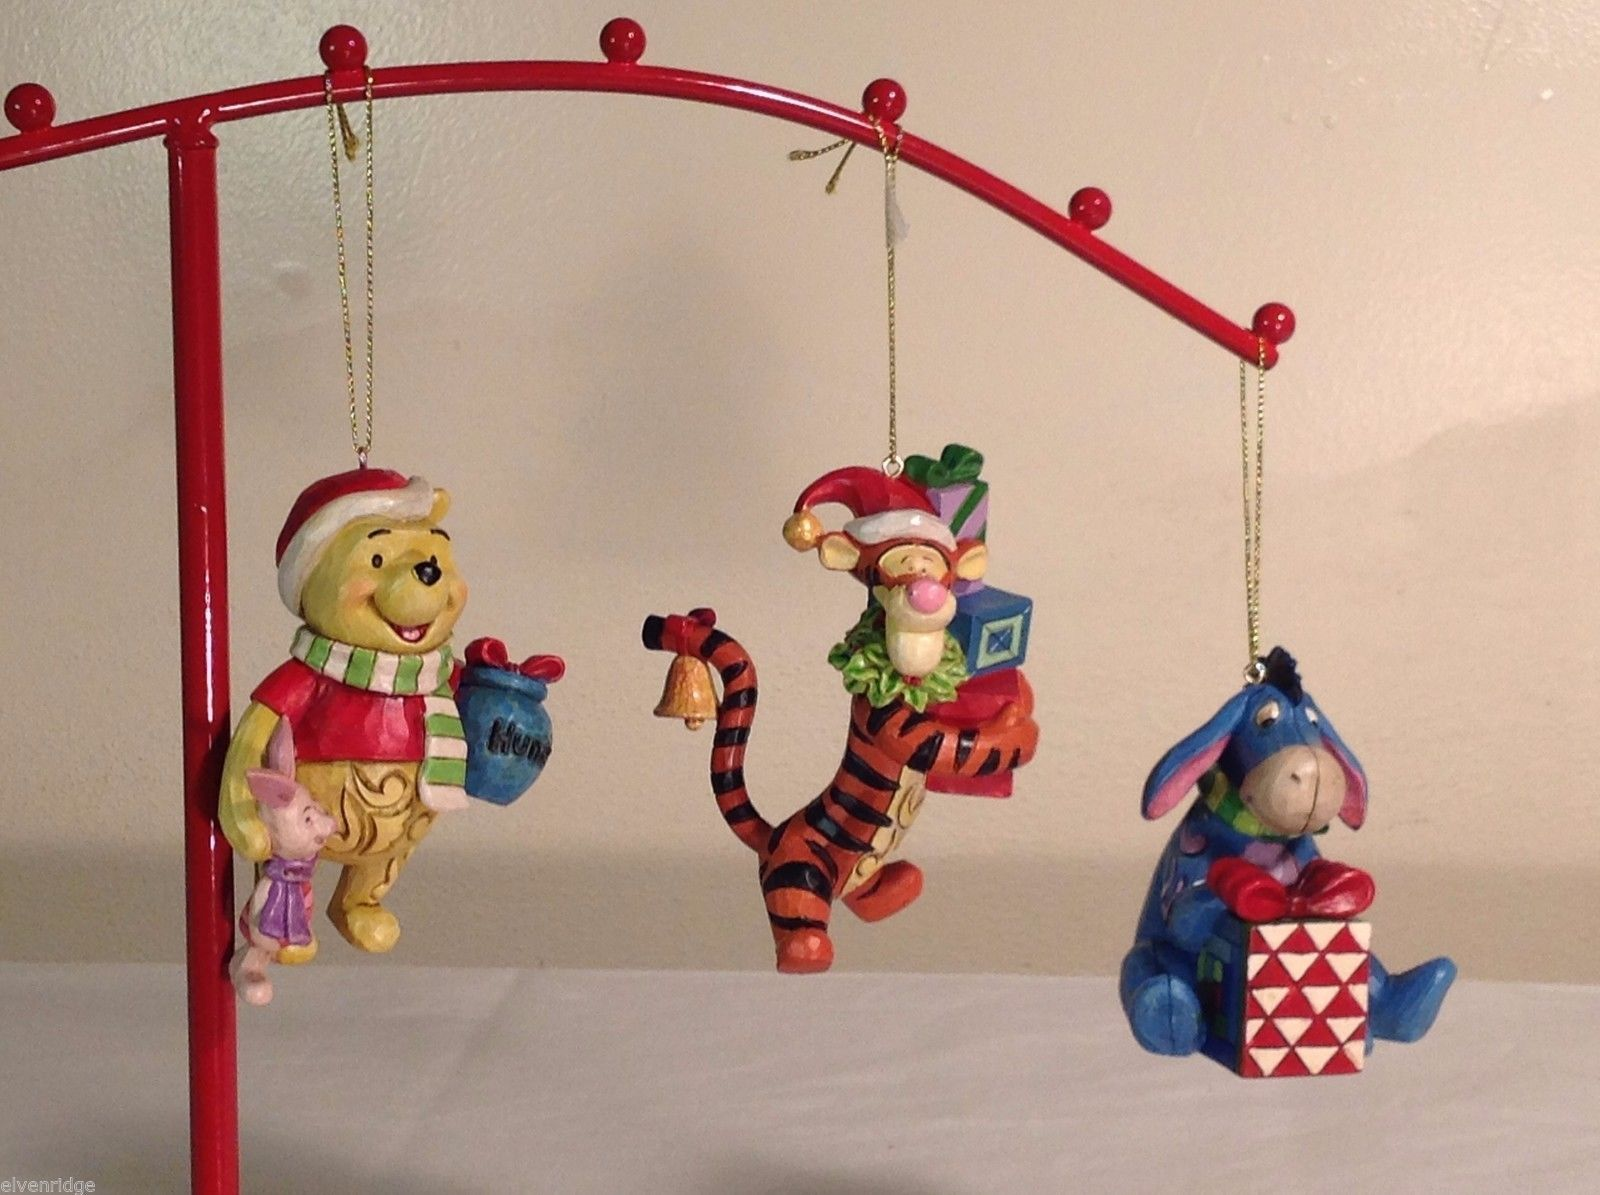 Disney Traditions 3 piece ornament set Winnie the Pooh